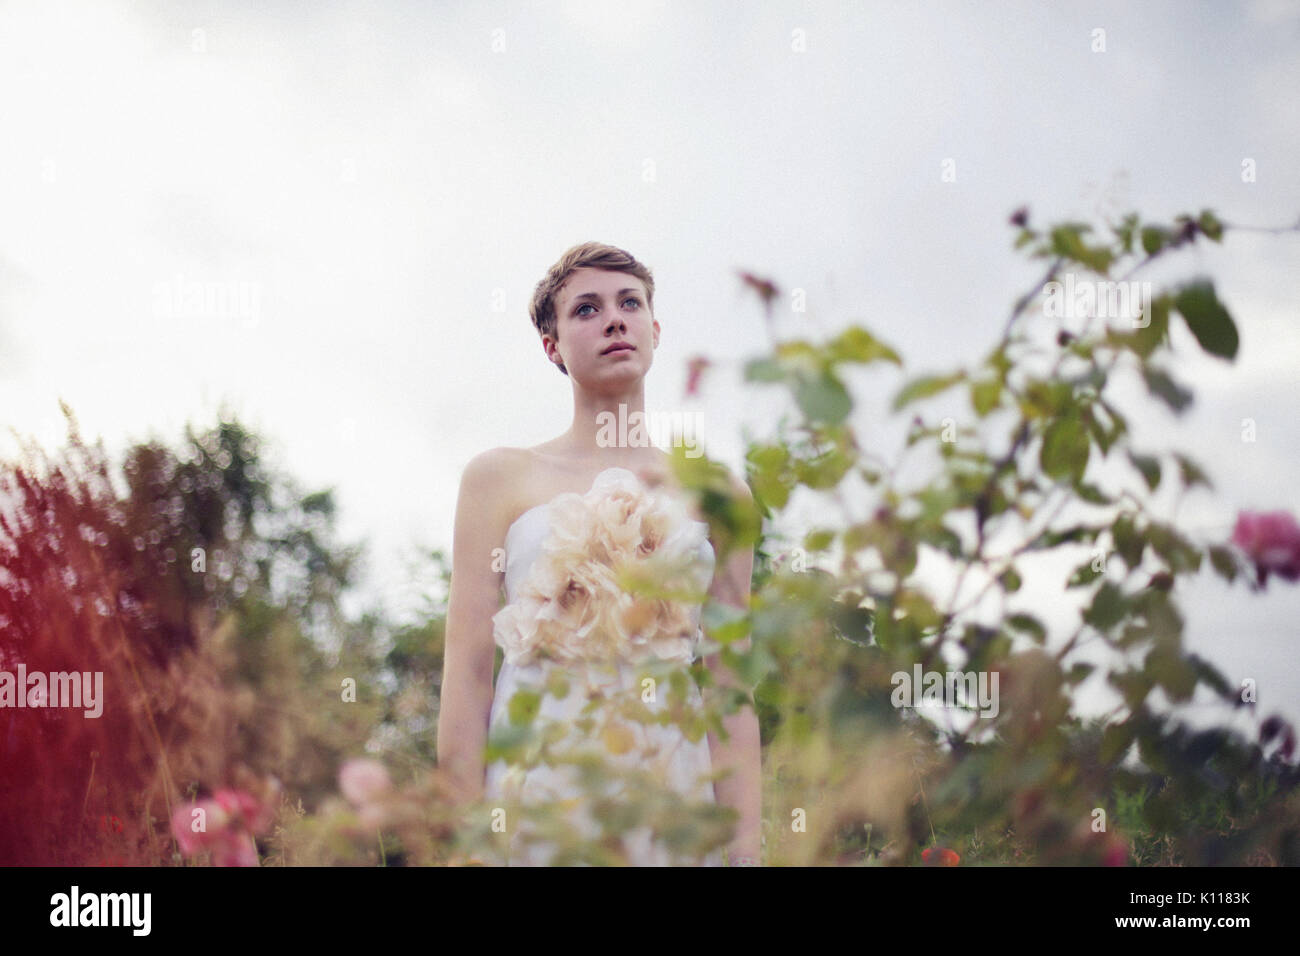 Young woman in a garden - Stock Image